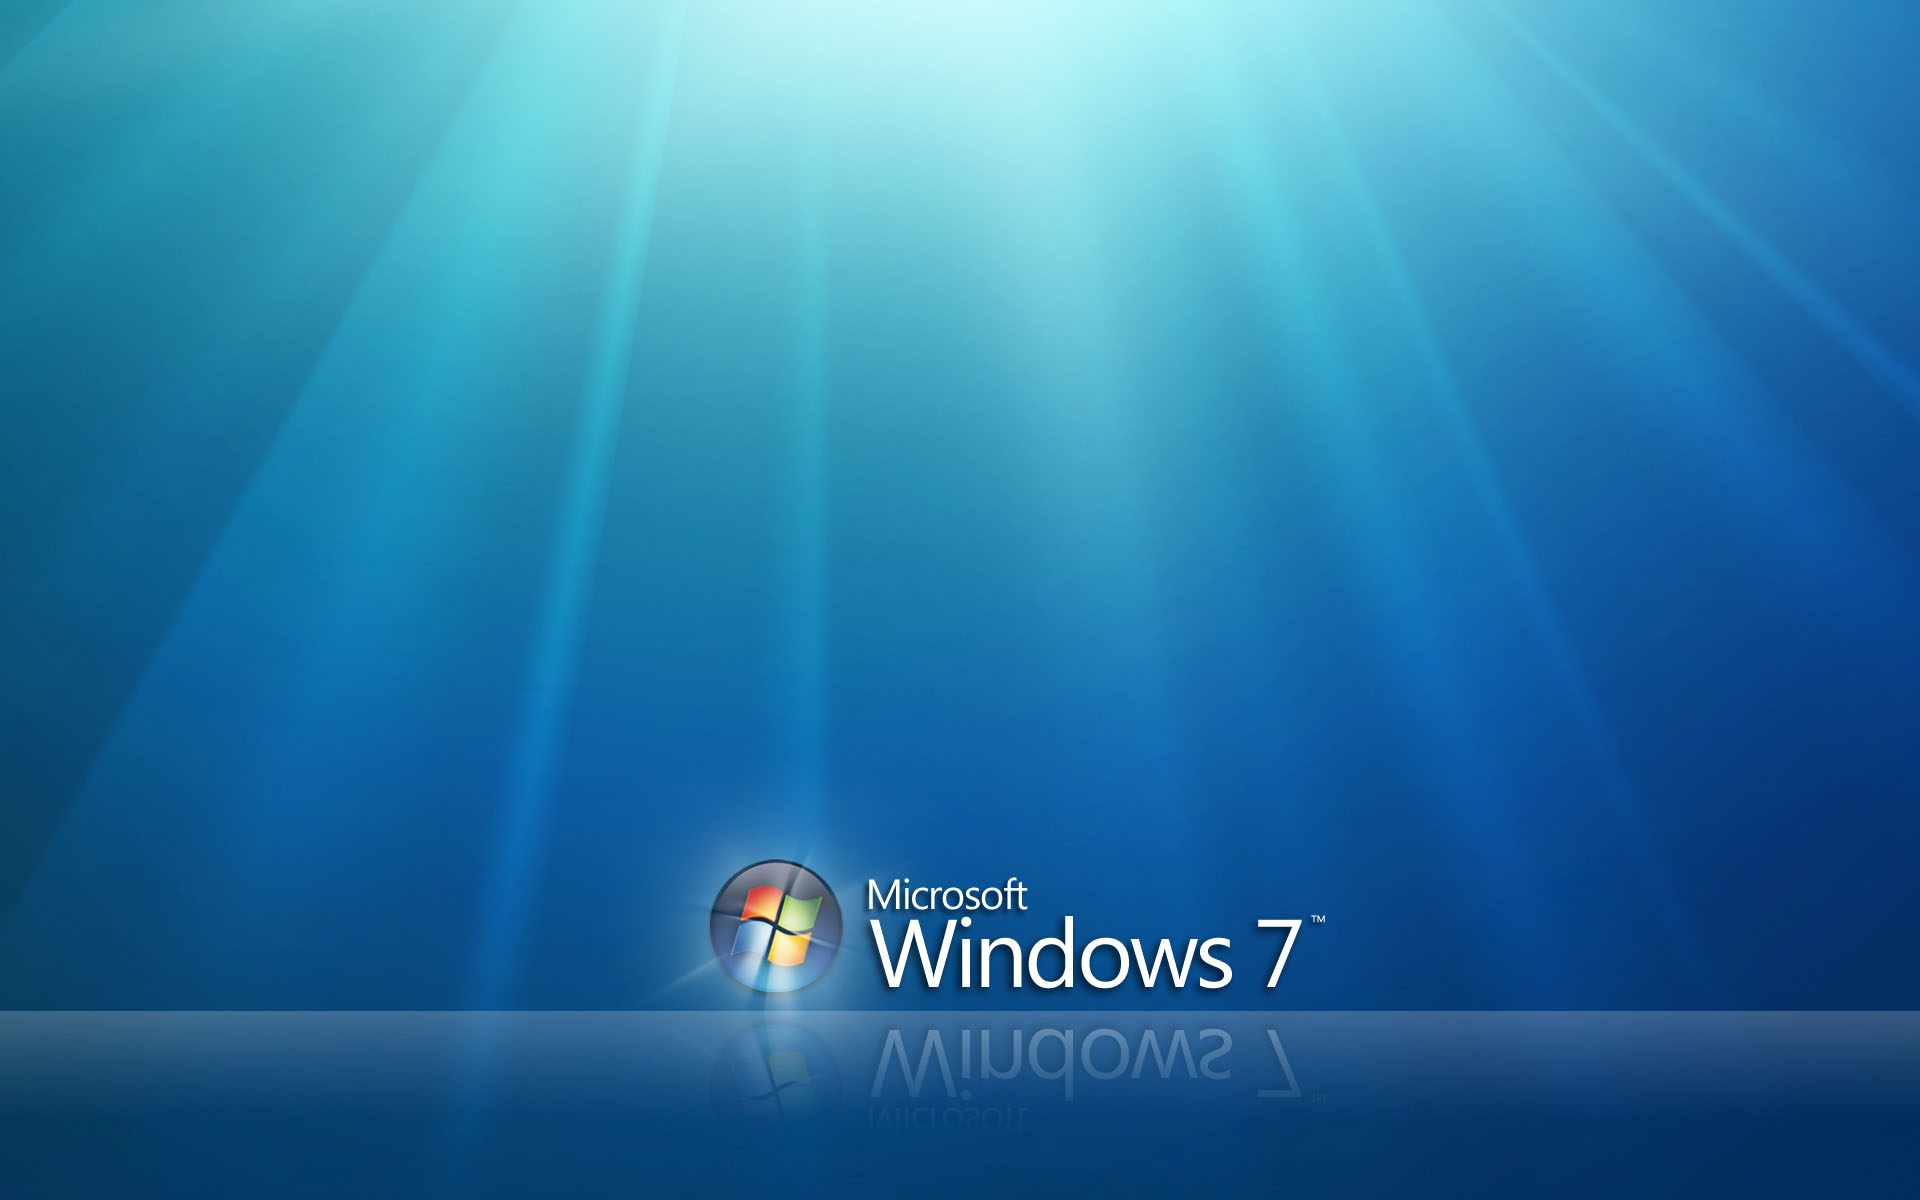 Lenovo Windows 7 Wallpapers Group 81